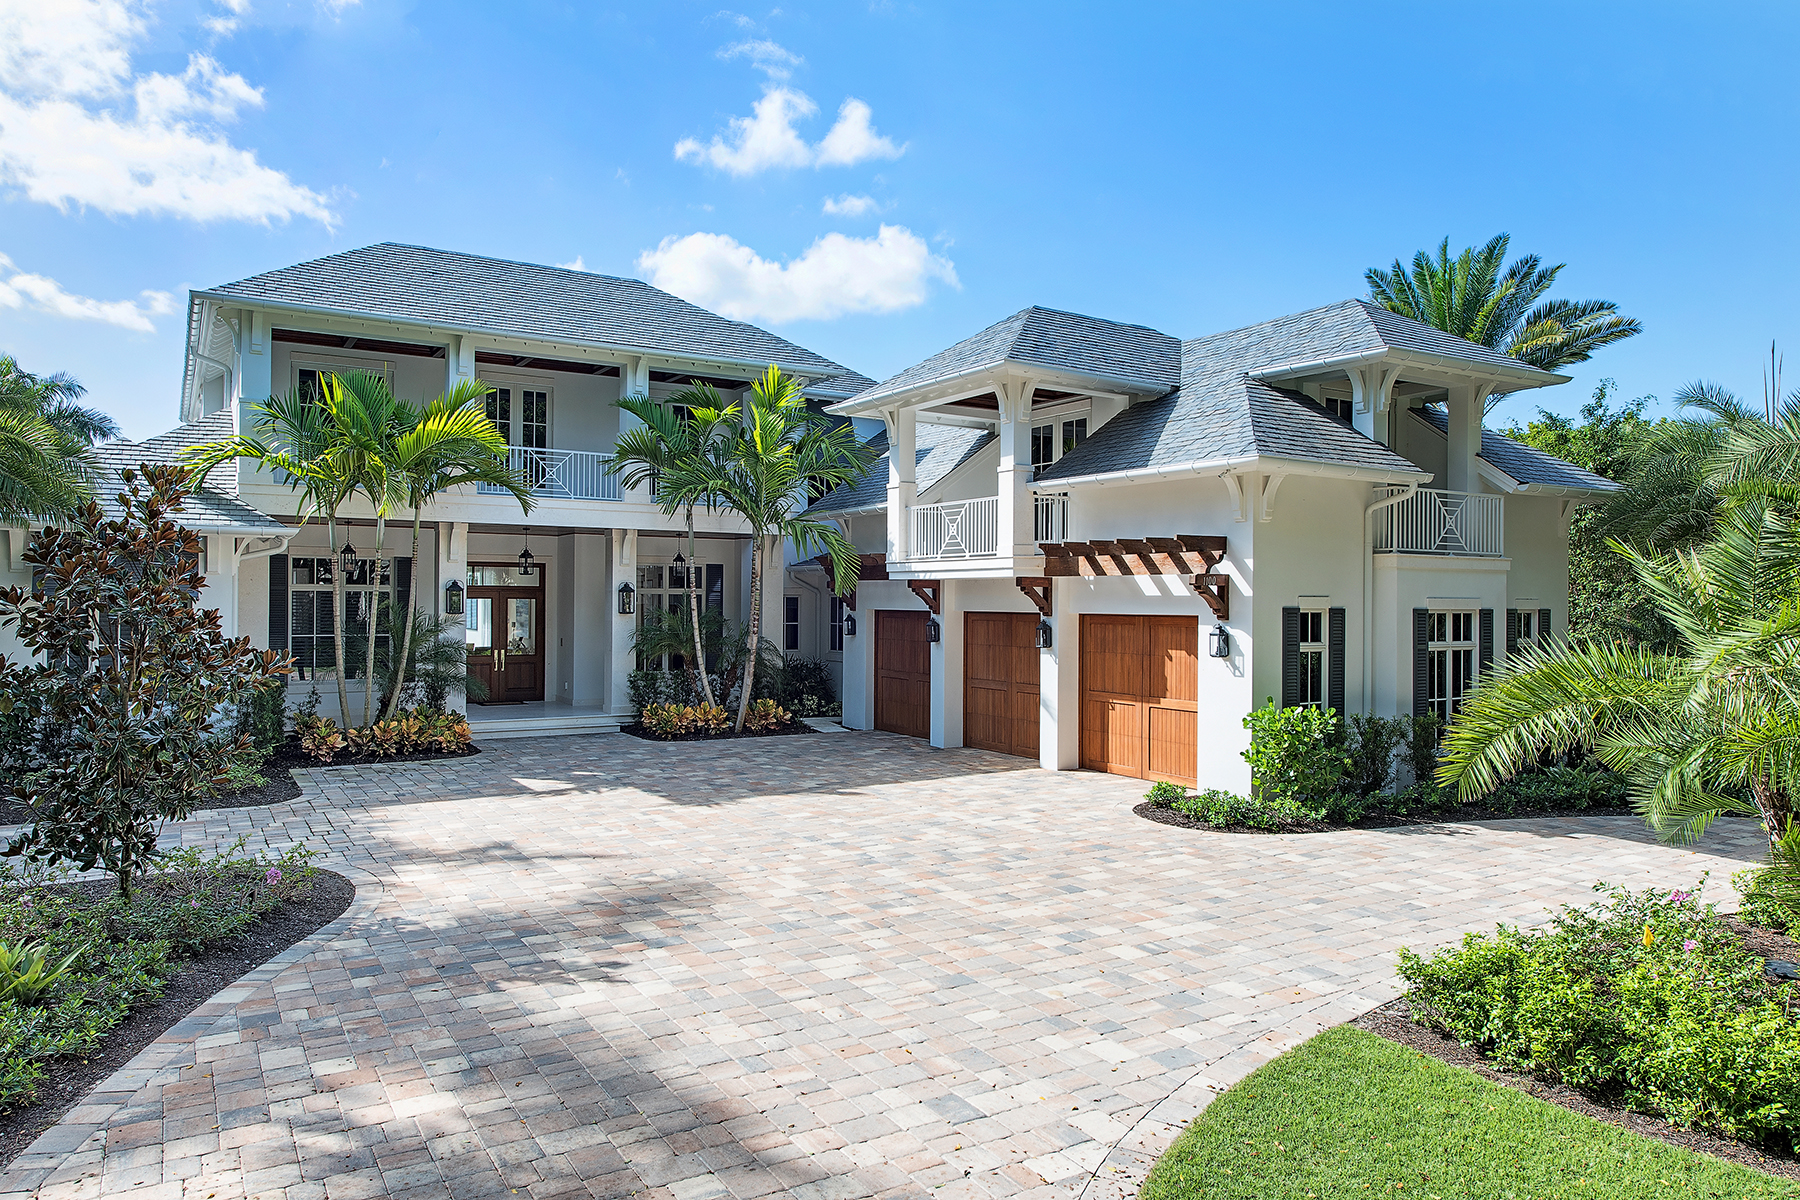 Maison unifamiliale pour l Vente à PORT ROYAL 1100 Galleon Dr, Naples, Florida 34102 États-Unis